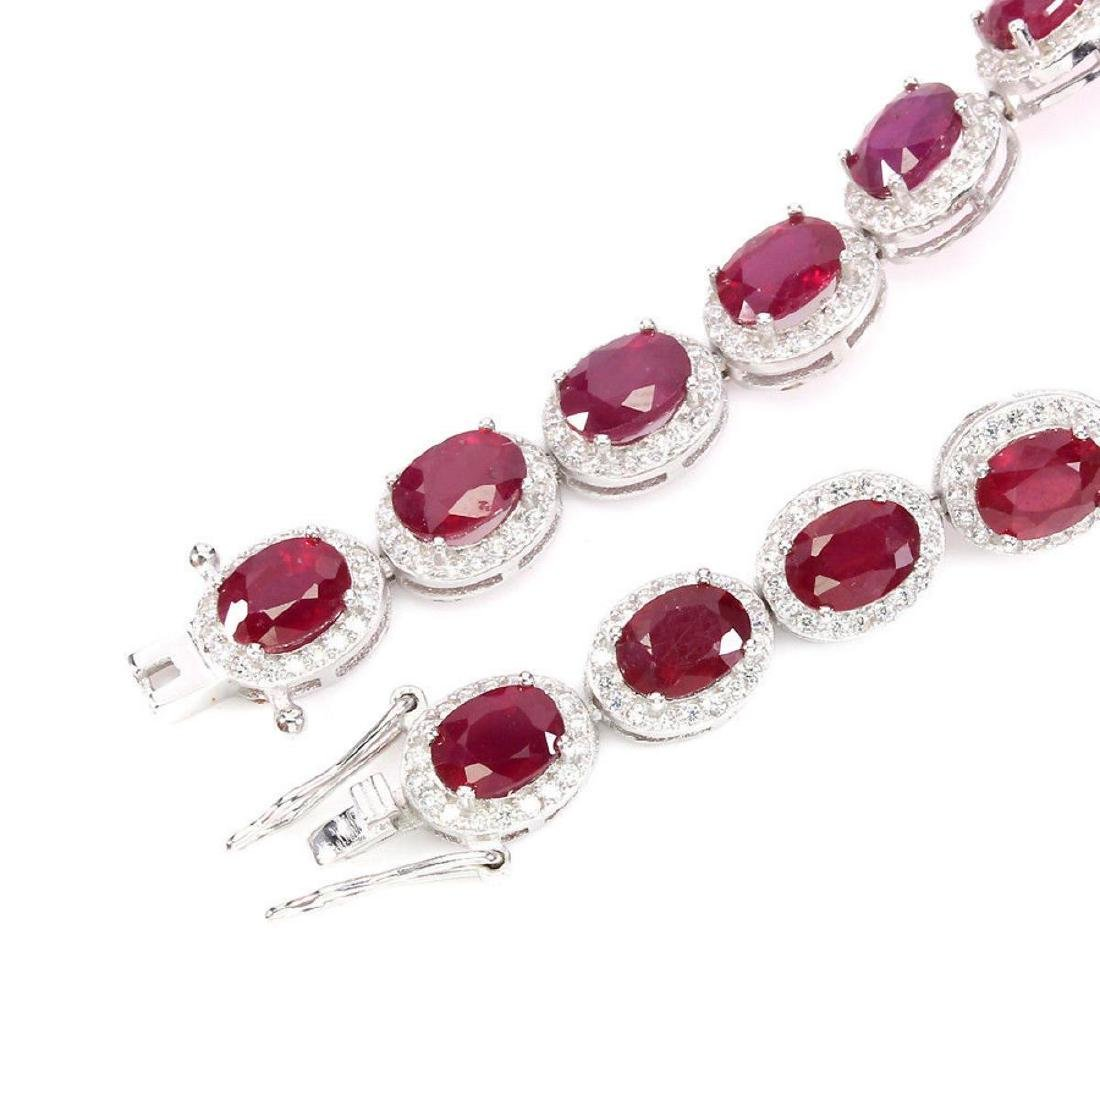 Natural Oval 7x5 Mm Blood Red Ruby Bracelet - 3